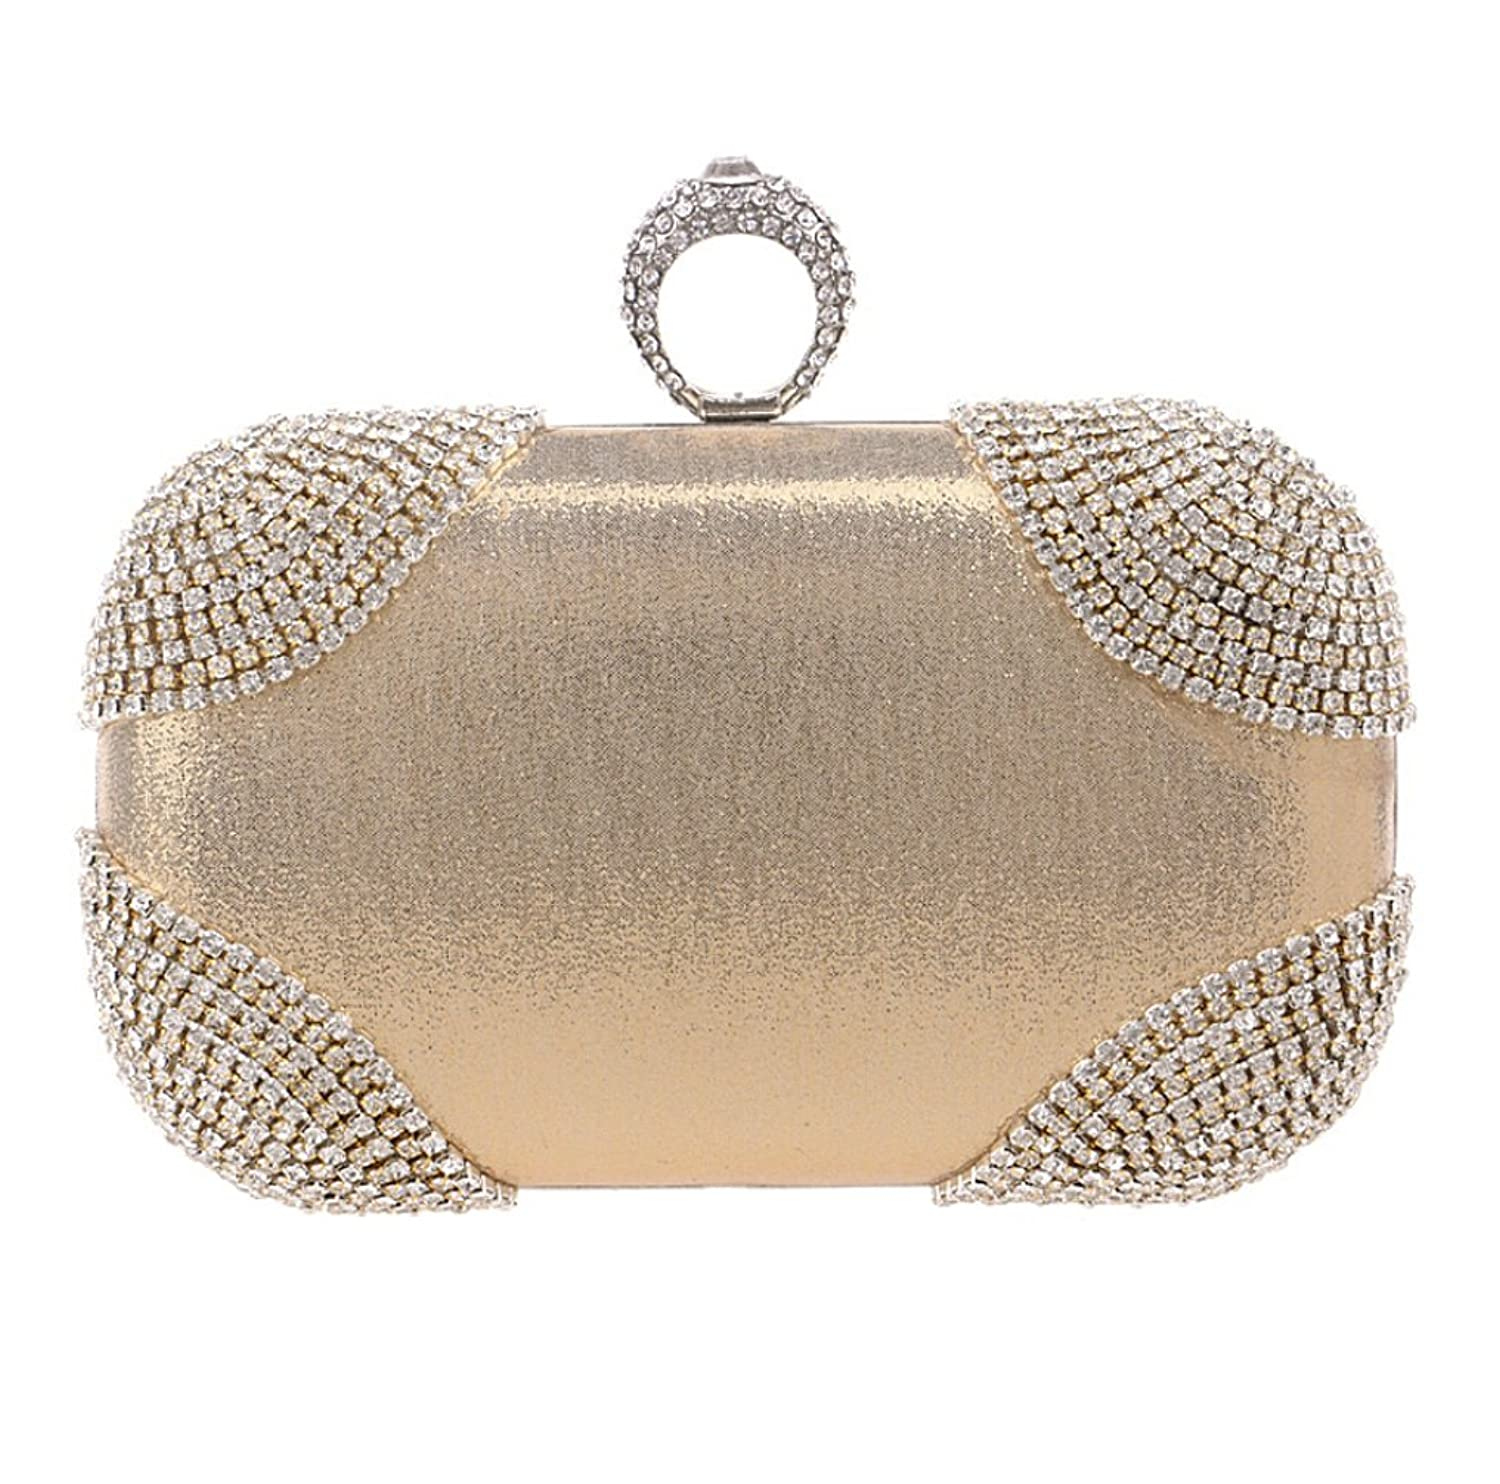 Abless Womens Glamour Elegant Evening Clutch Fashion Purse Chain Handbag -SK1121